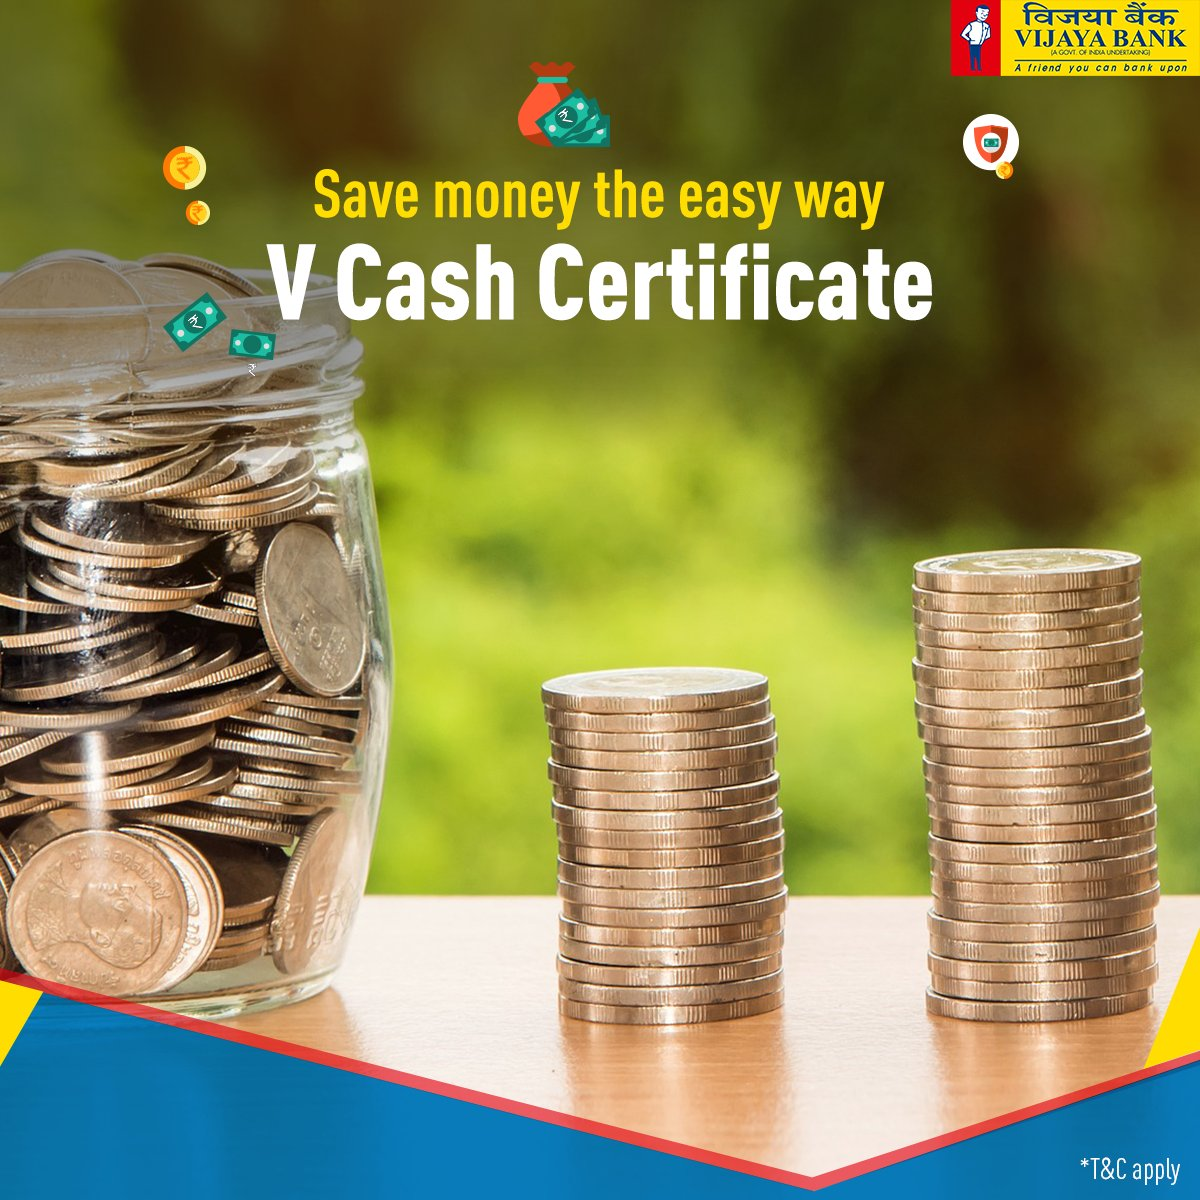 Vijaya bank on twitter saving money is easy opt for vijaya cash the highest yield of interest on your savings tc apply learn more httpsvijayabanksavings and depositsterm depositsv cash certificate 1betcityfo Images